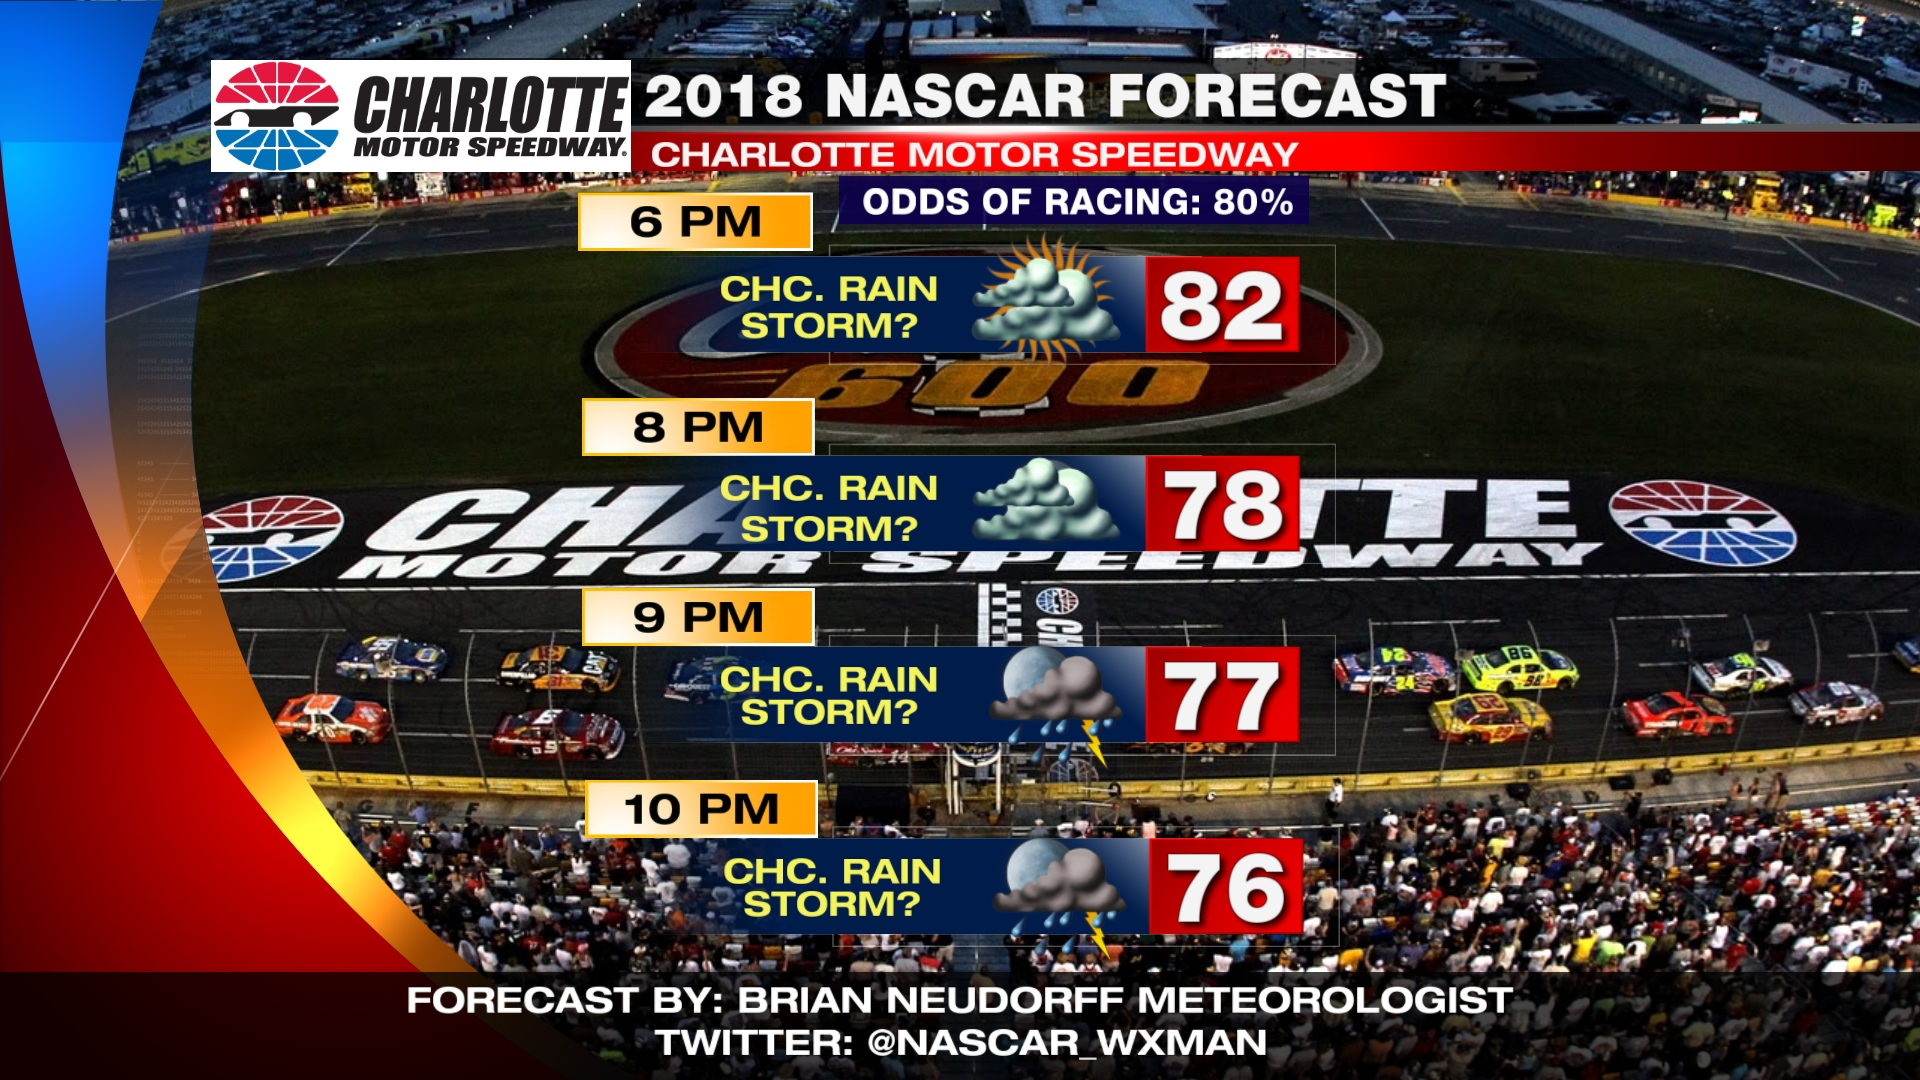 Please follow Aaron @RaceWeather& http://RaceWeather.net and Brian on Twitter @NASCAR_WXMAN for the latest NASCAR weather updates.